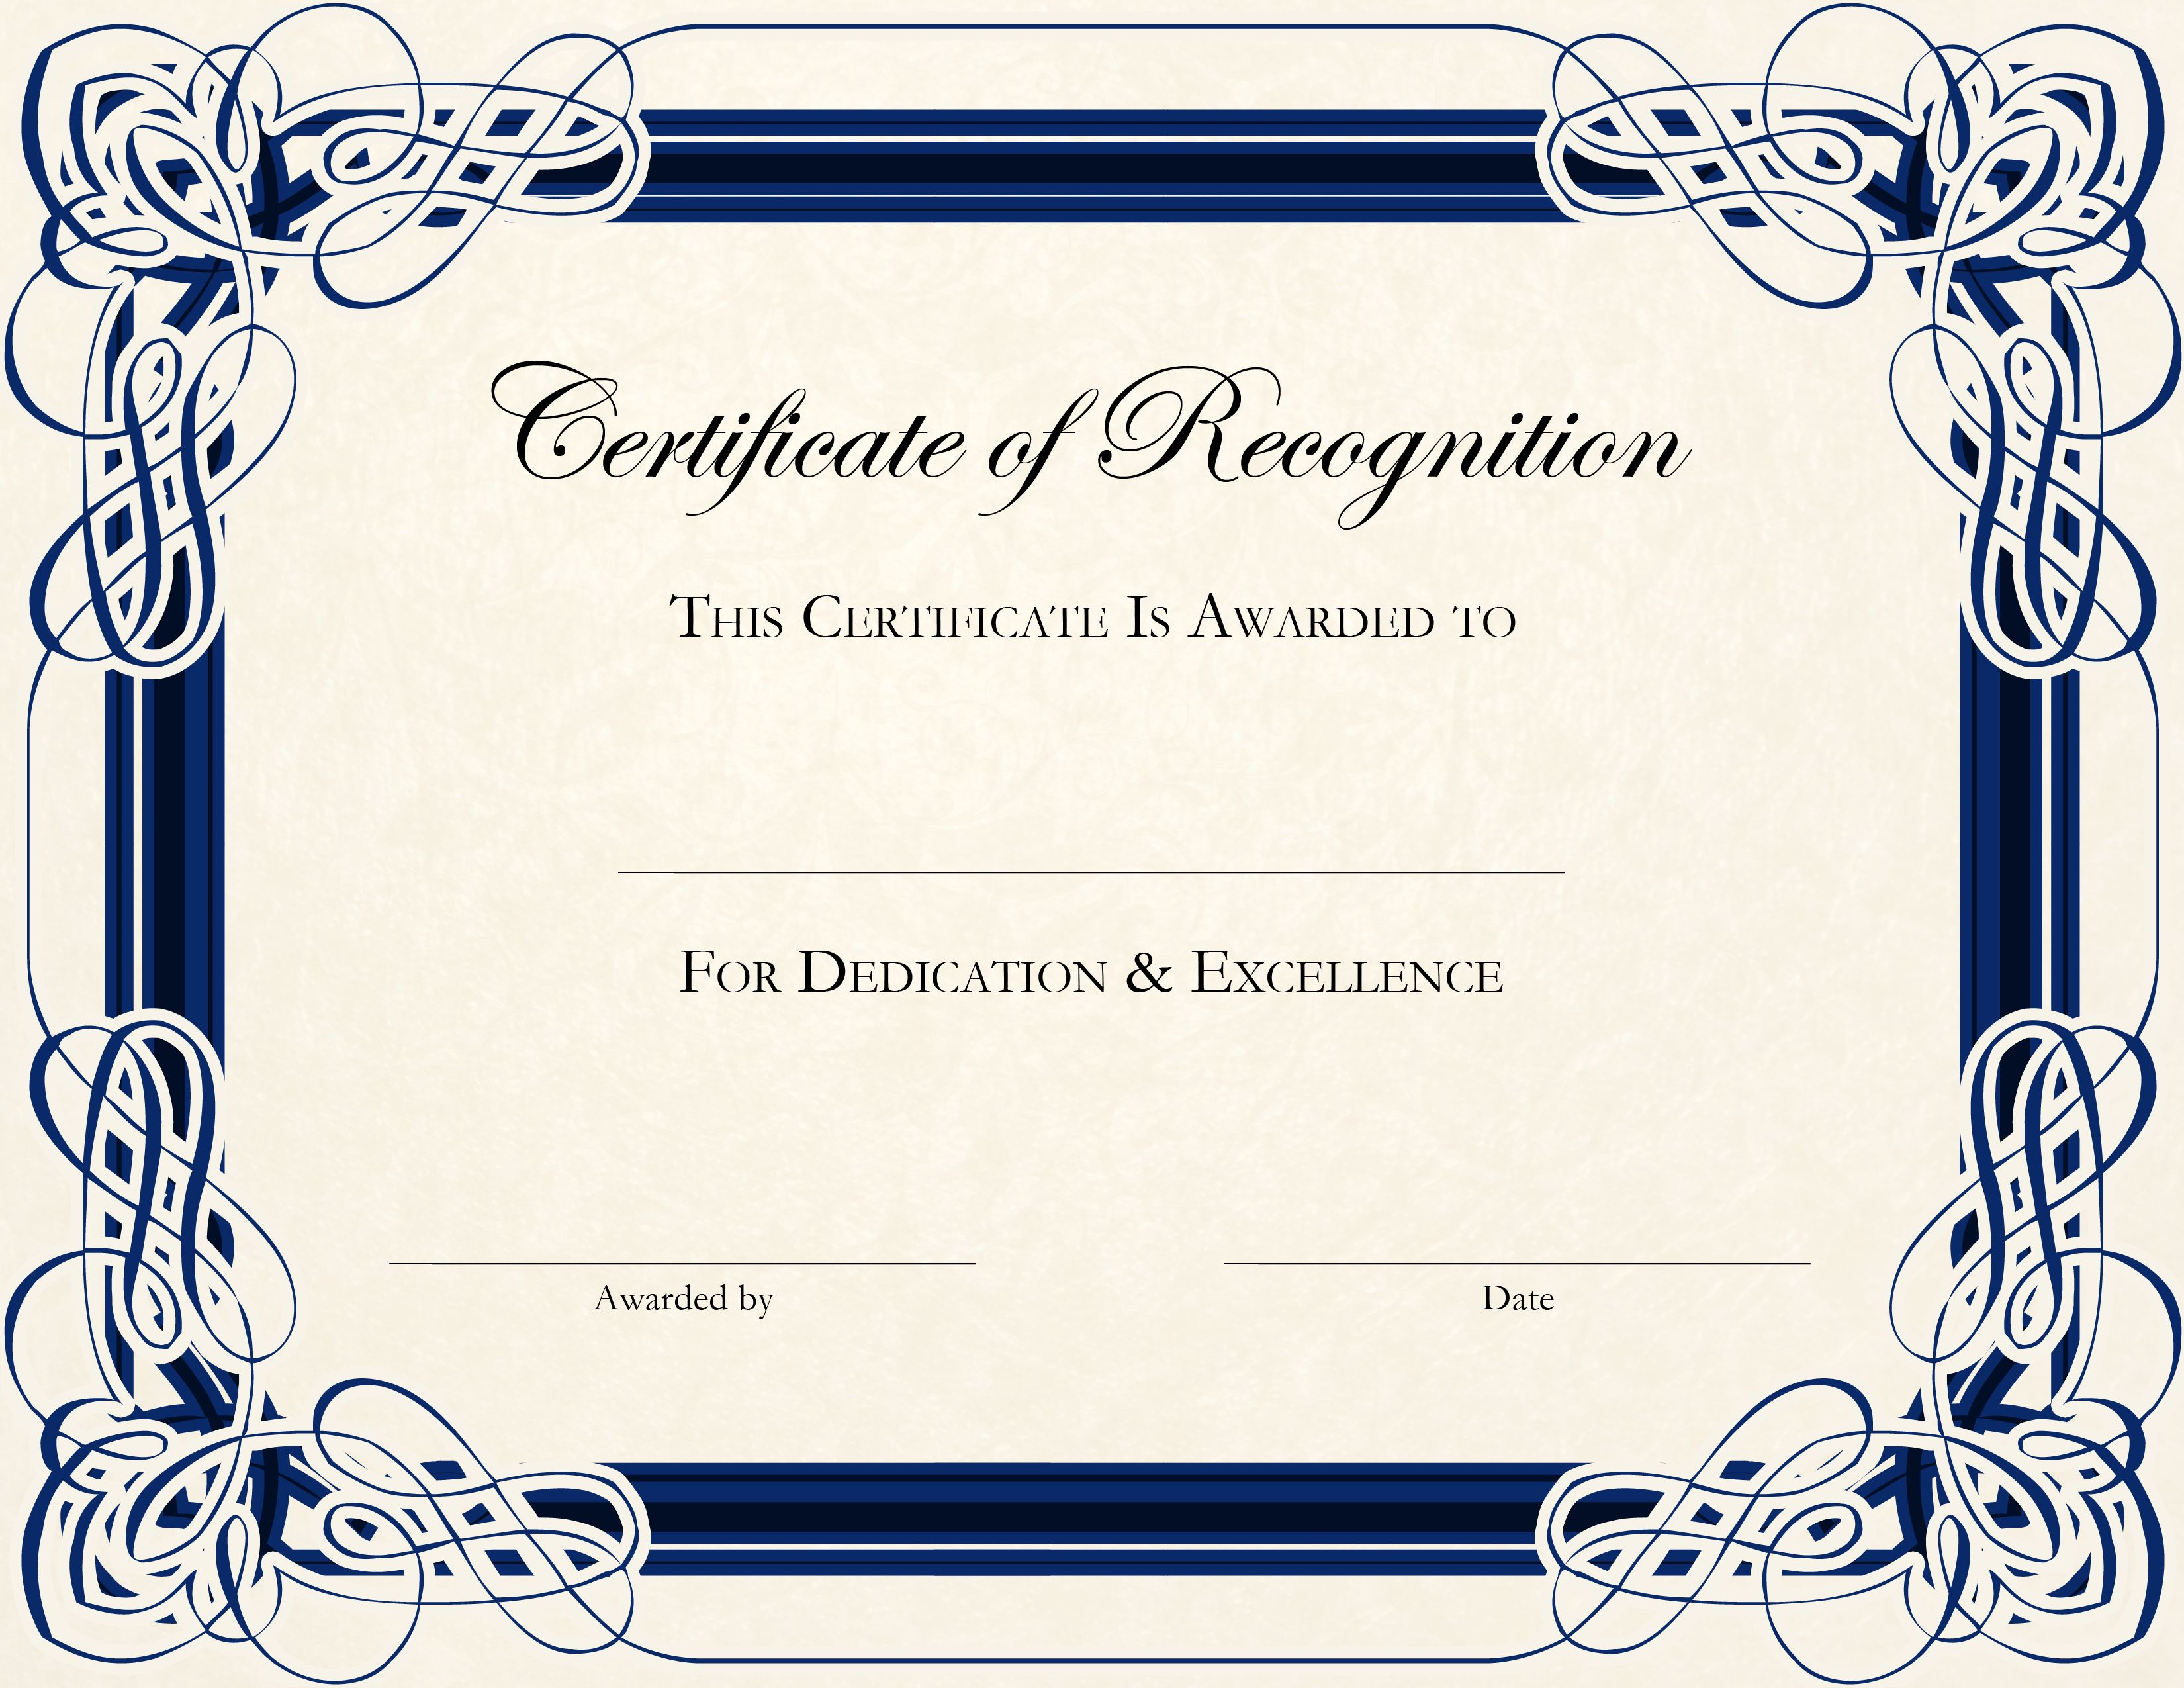 Certificate Template Designs Recognition Docs Blankets Pinterest